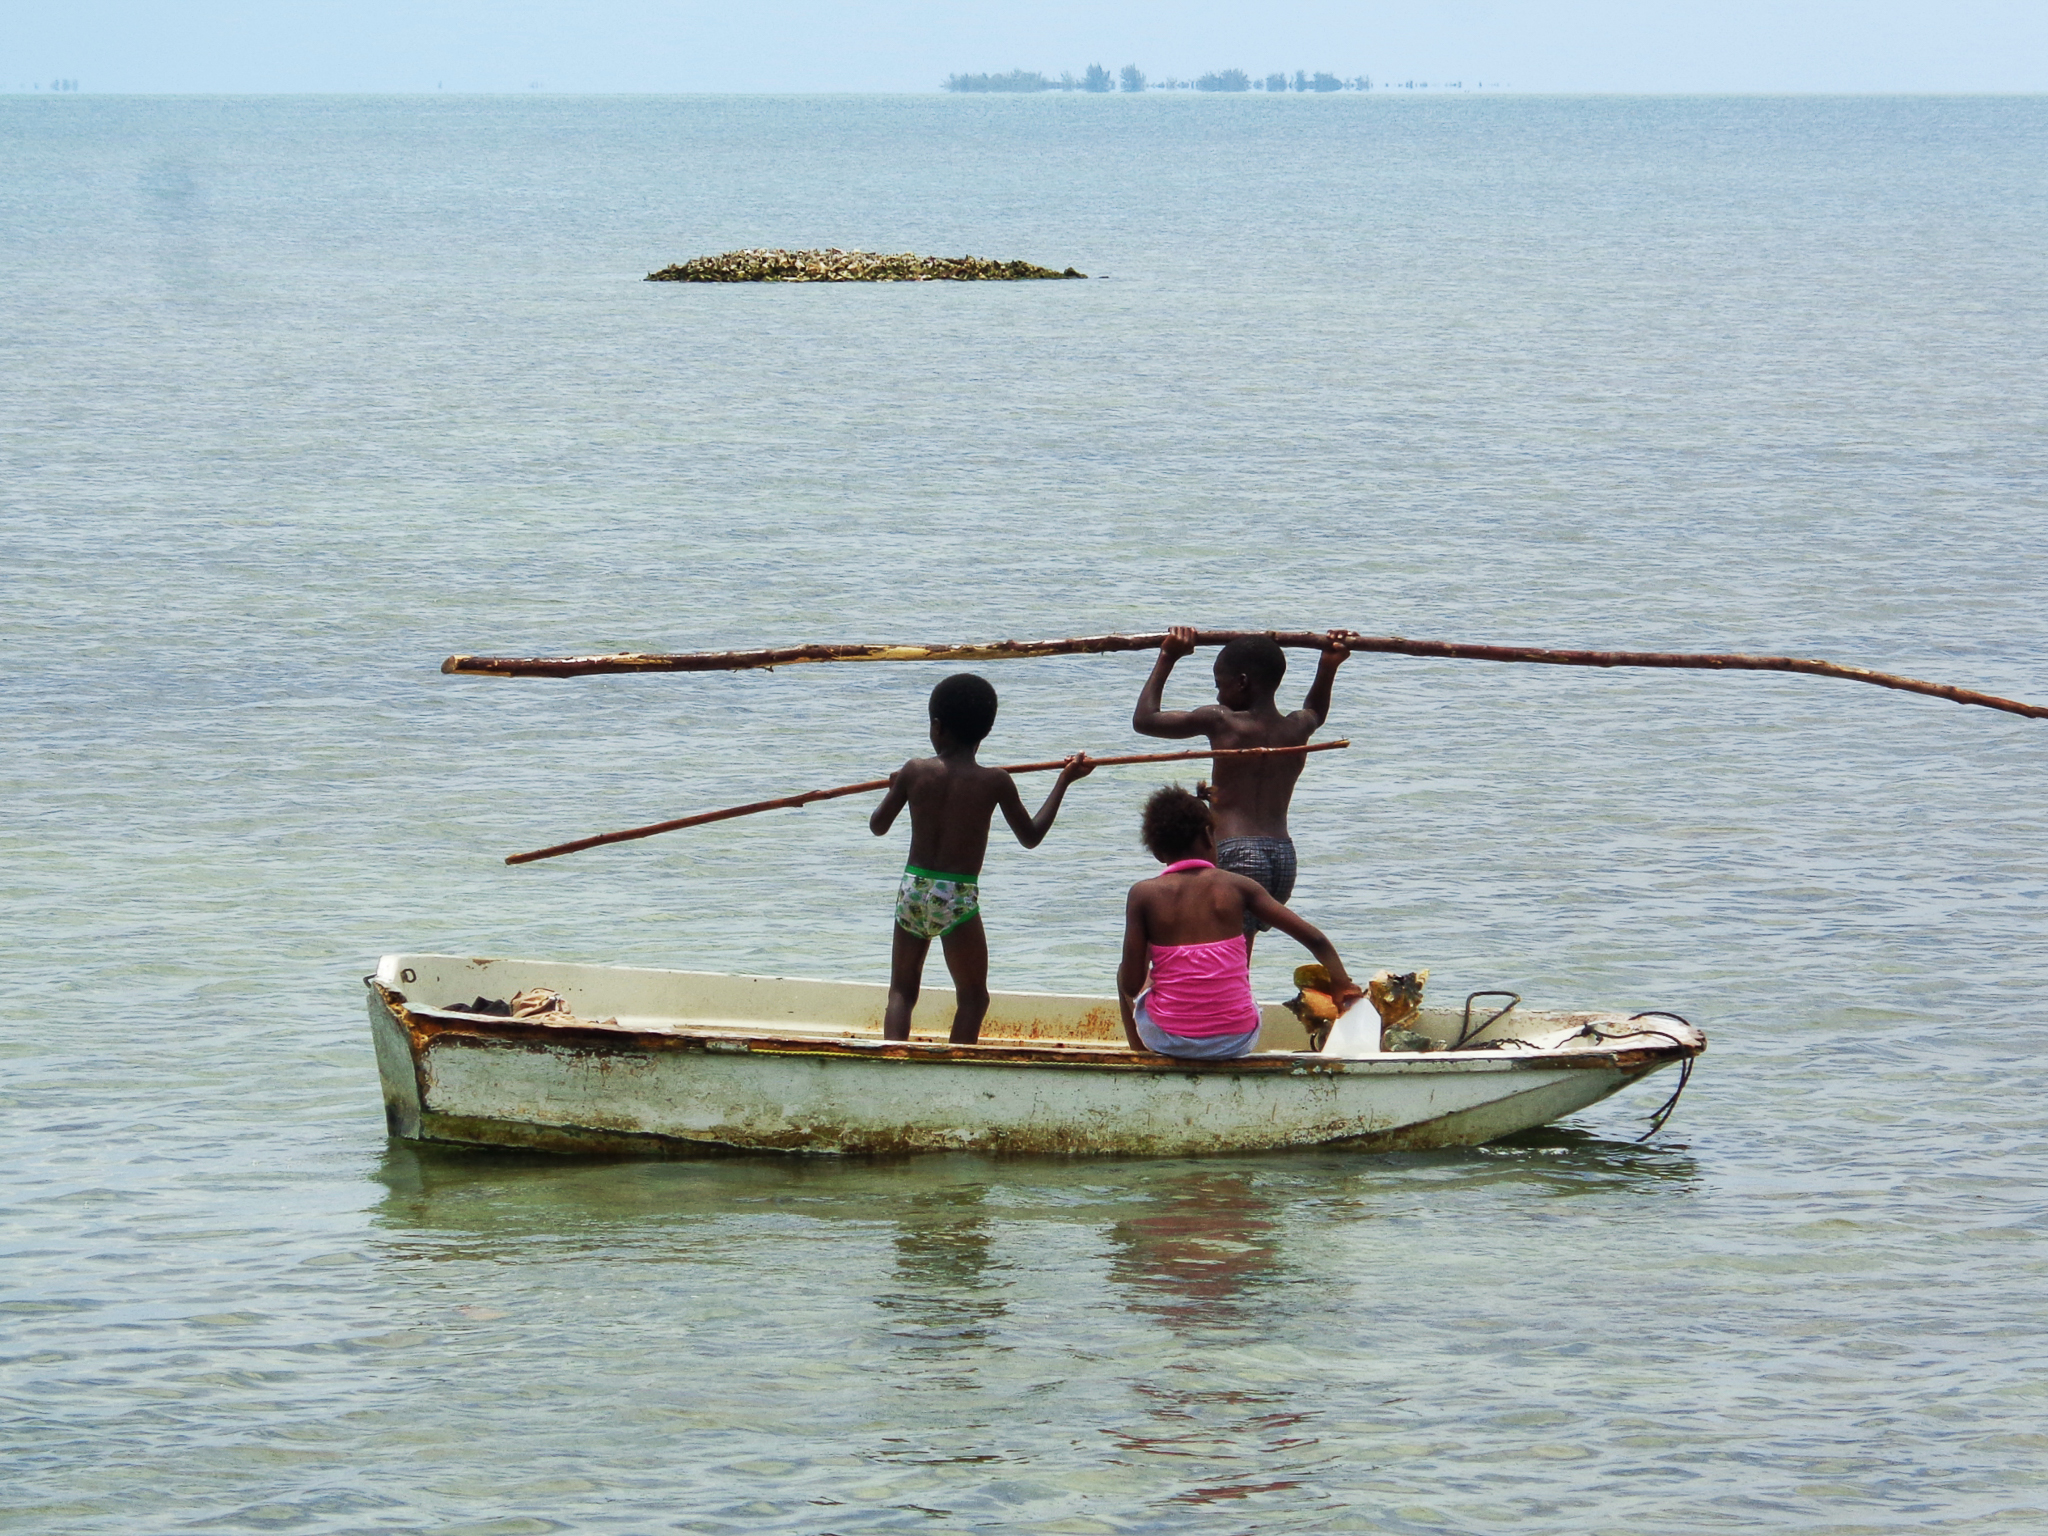 Young Androsians play just offshore. The island they eventually inherit will be greatly impacted by decisions made today about which things to value most. Photograph by Ann-Sophie Gabellini